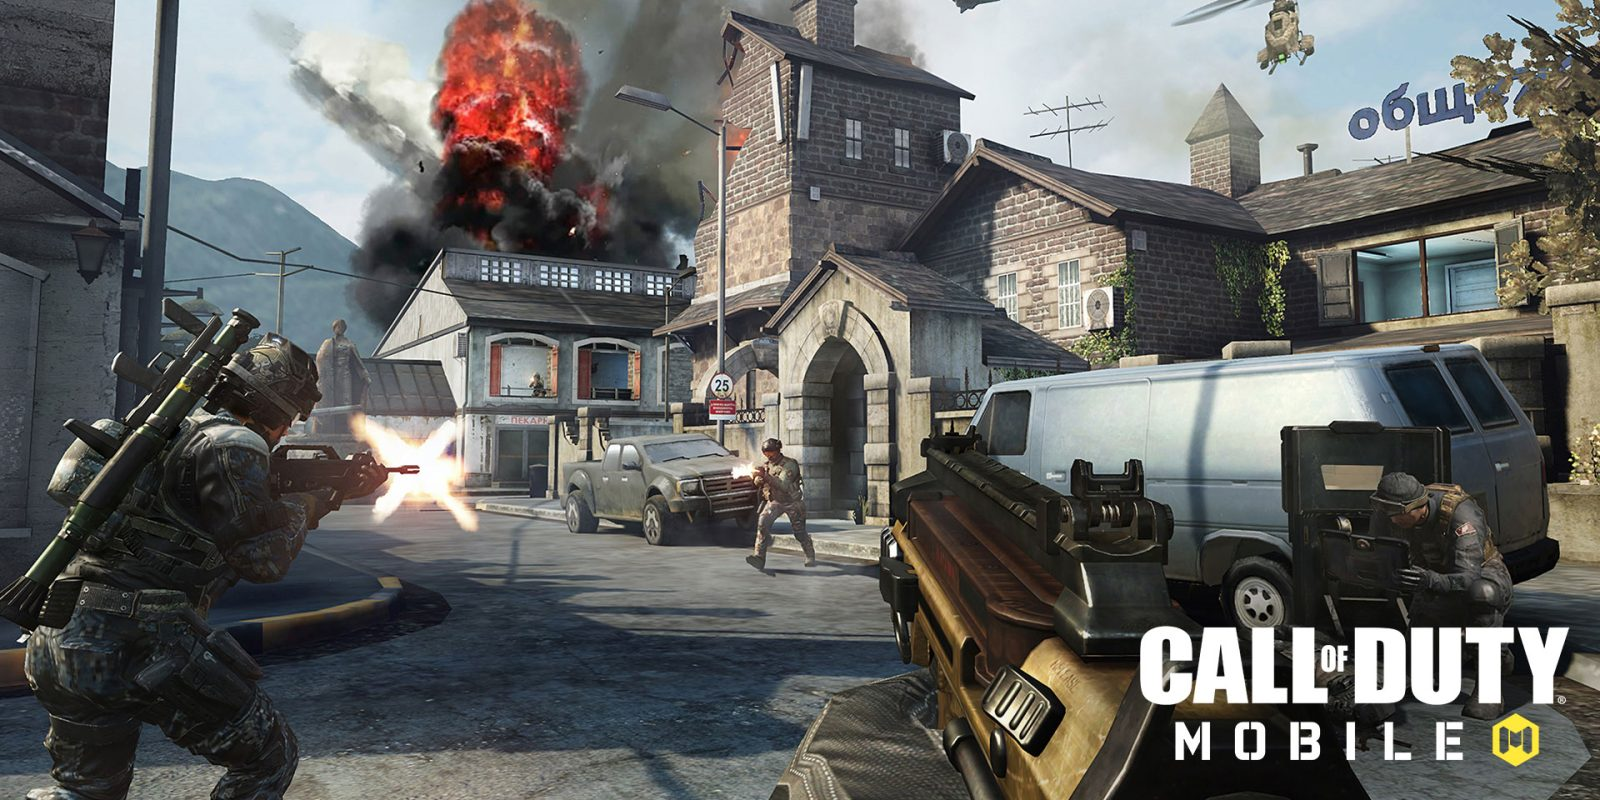 Call of Duty Mobile to release next month with 100-player Battle Royale, more